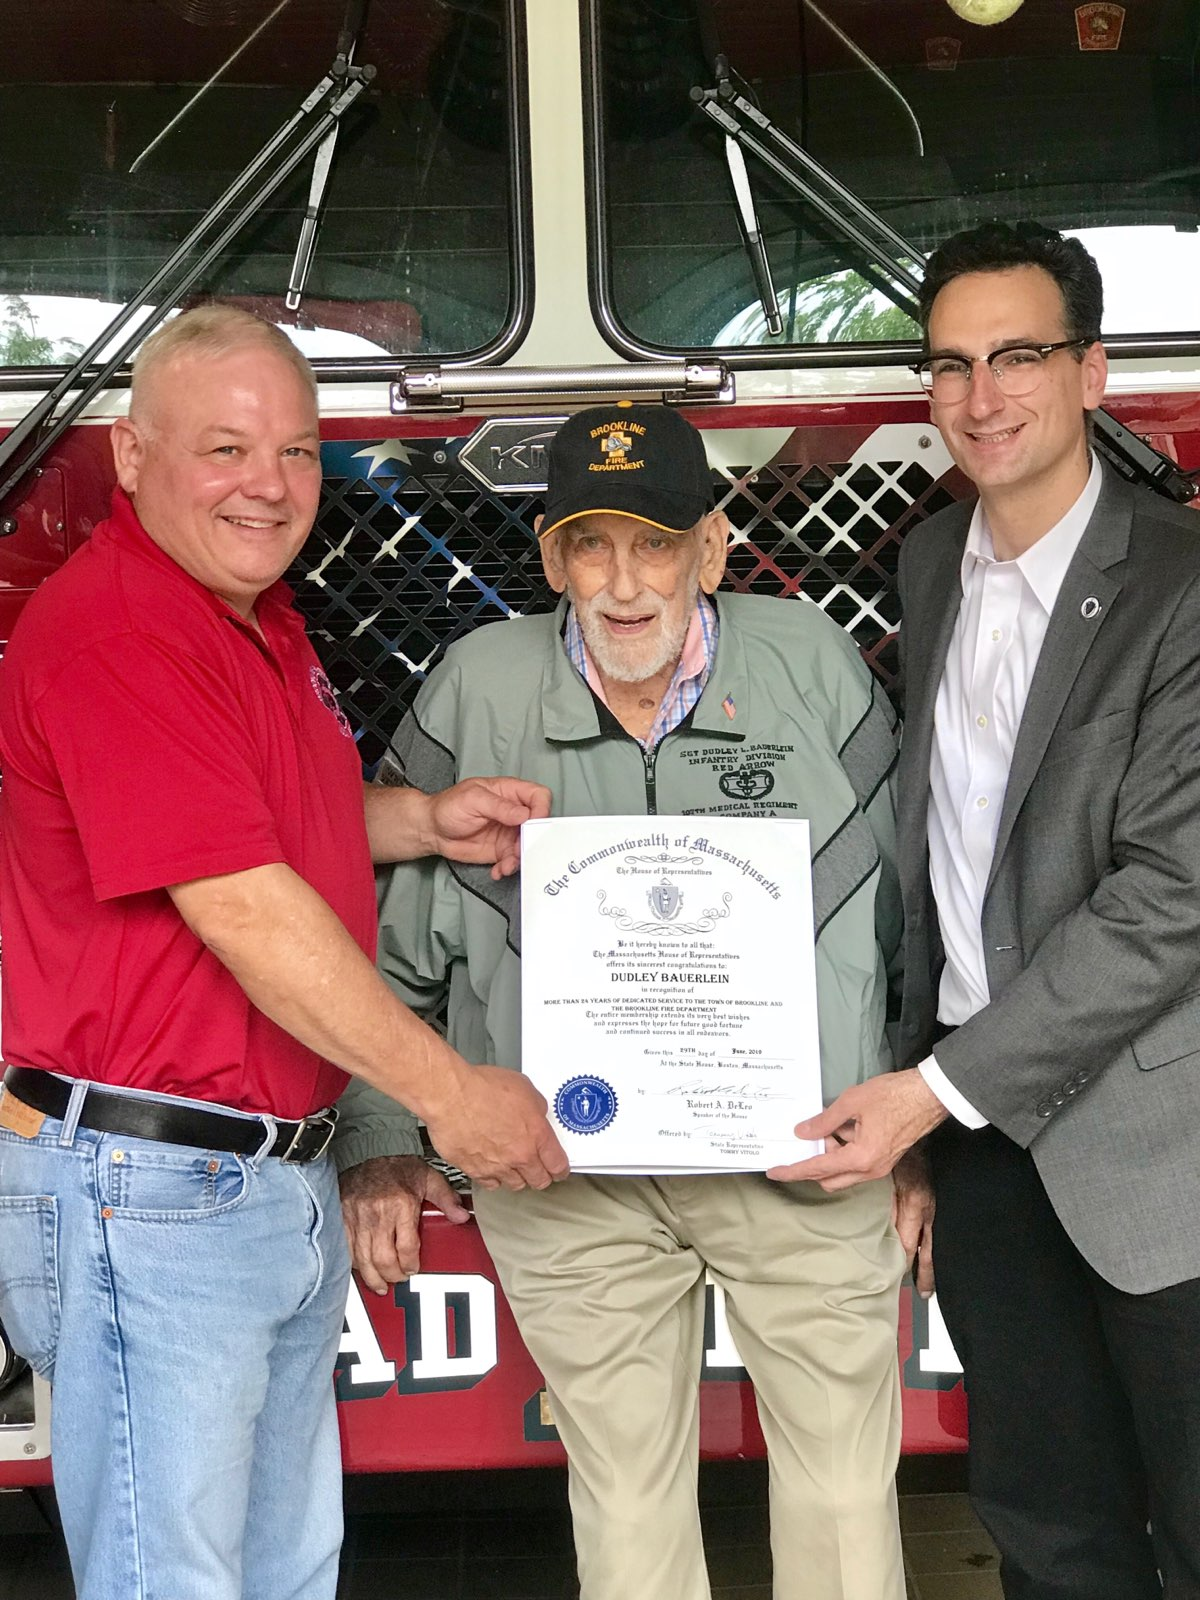 Tommy Vitolo presenting citation to retired Brookline Fire Fighter Dudley Bauerlein with Paul Trahon